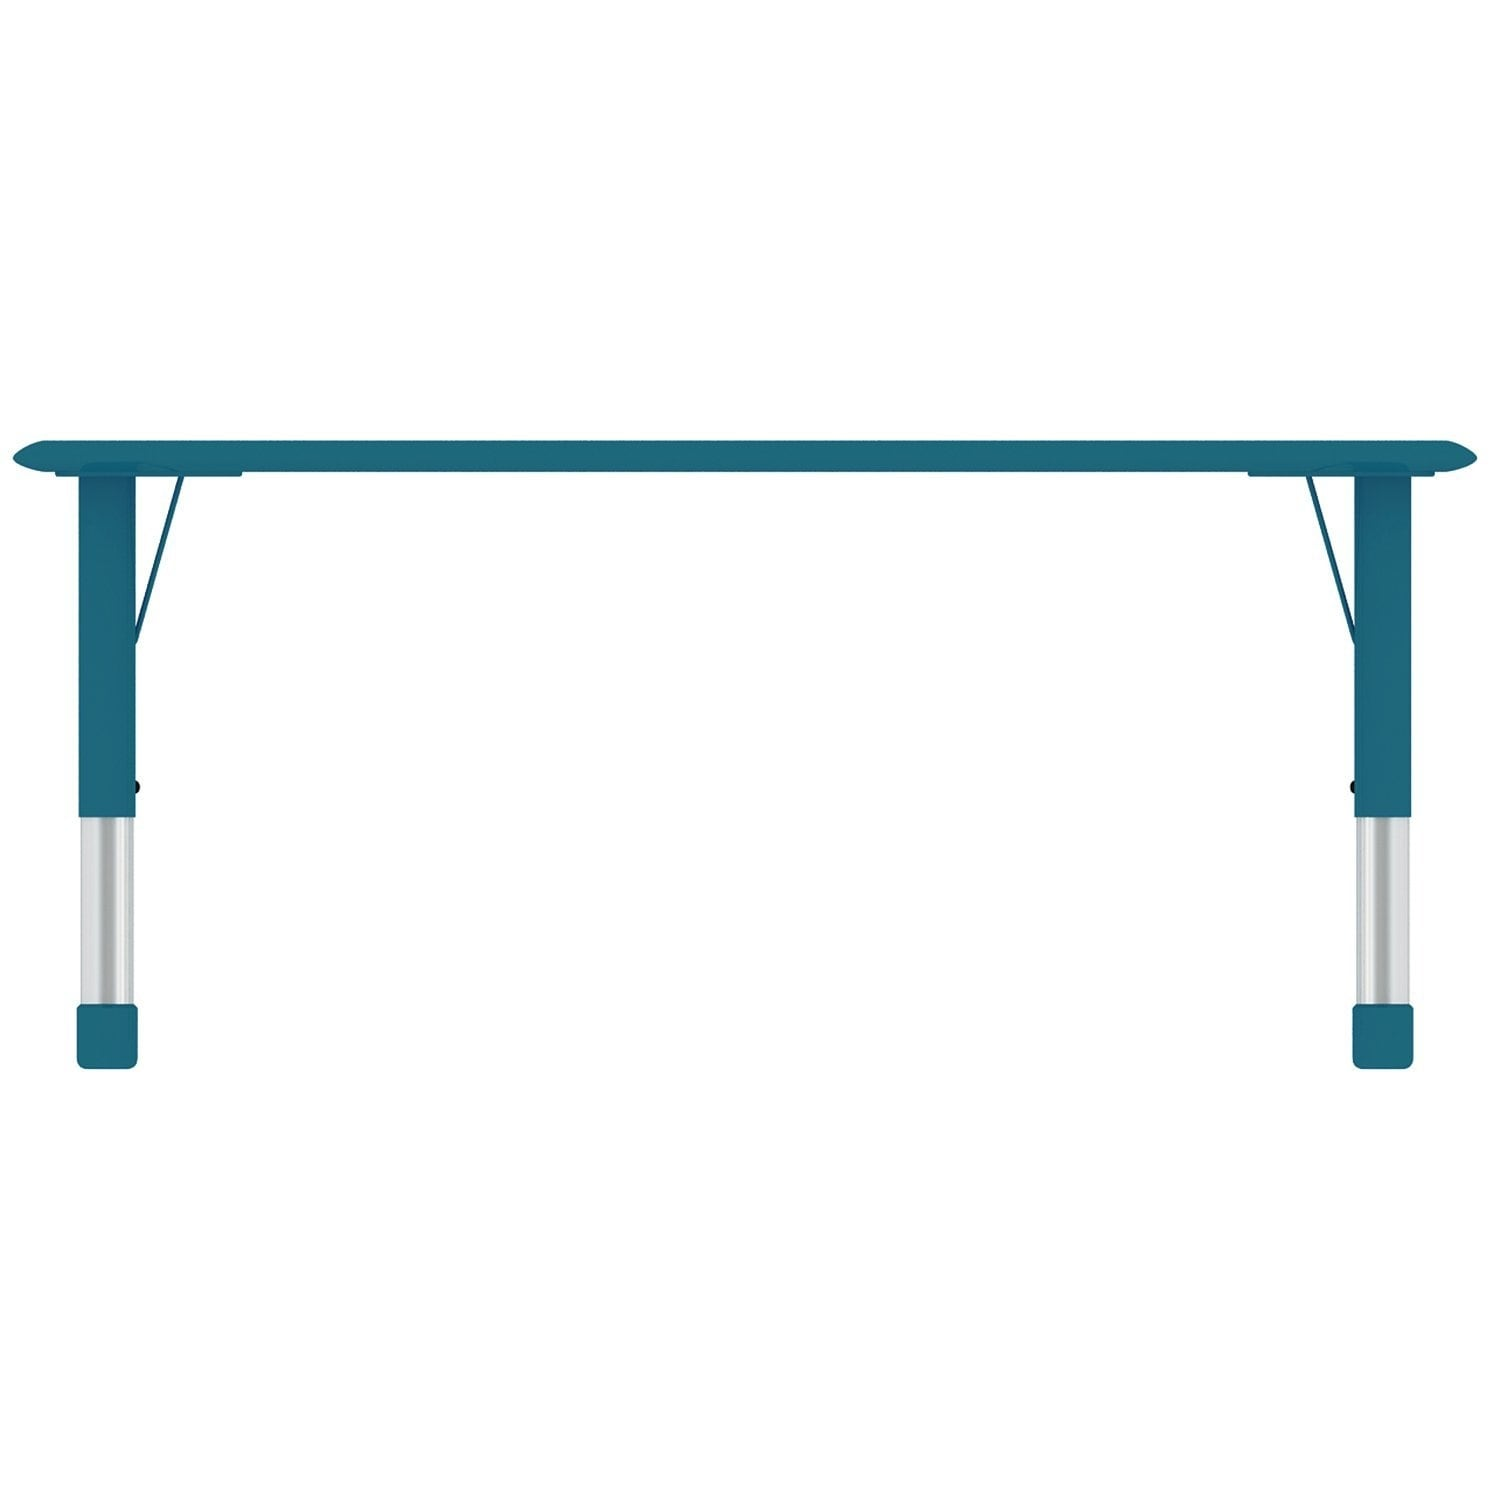 2xhome   Blue Teal Kids Table Height Adjustable Rectangle Shape Activity  Table School Table Childs Bright Colorful Table   Free Shipping Today    Overstock   ...